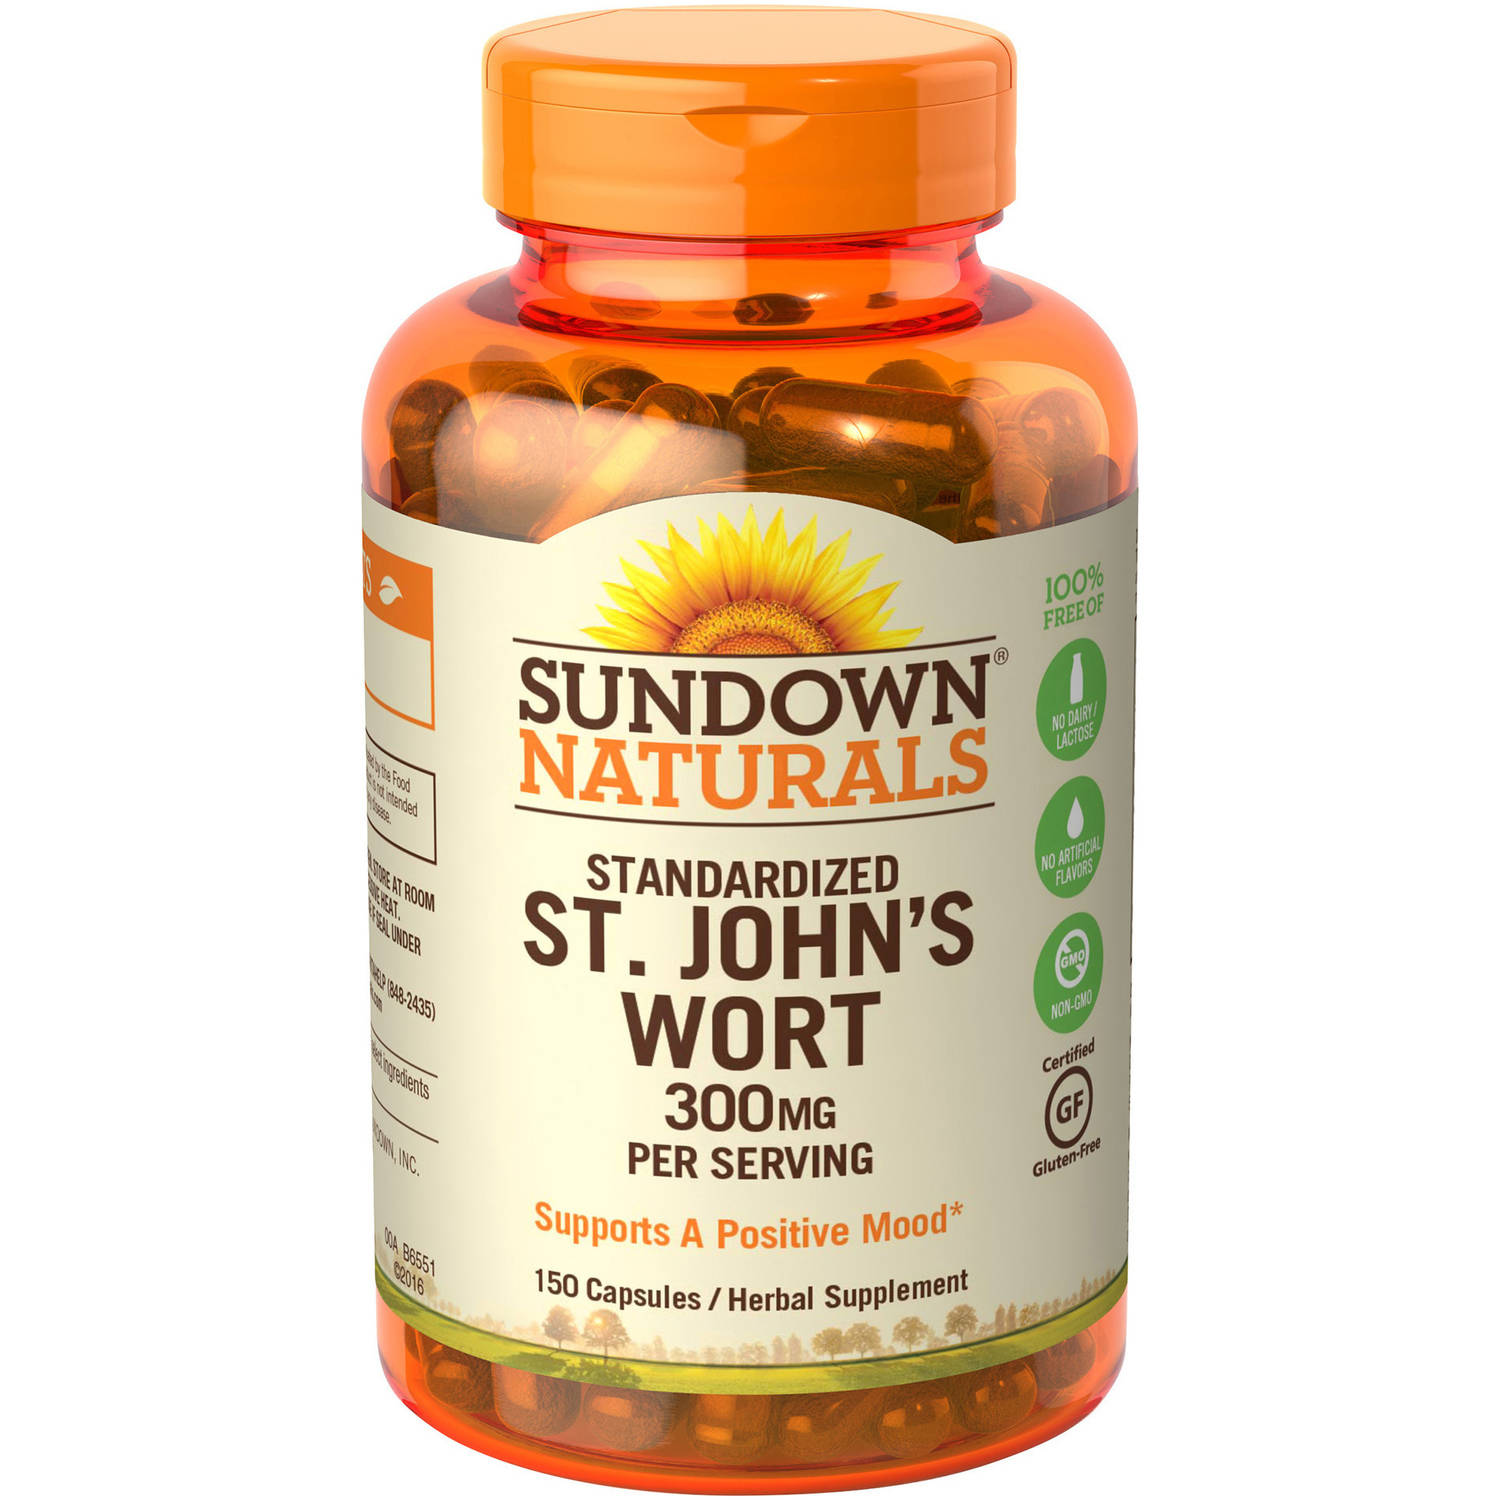 Sundown Naturals St. John's Wort Herbal Supplement Capsules, 300mg, 150 count